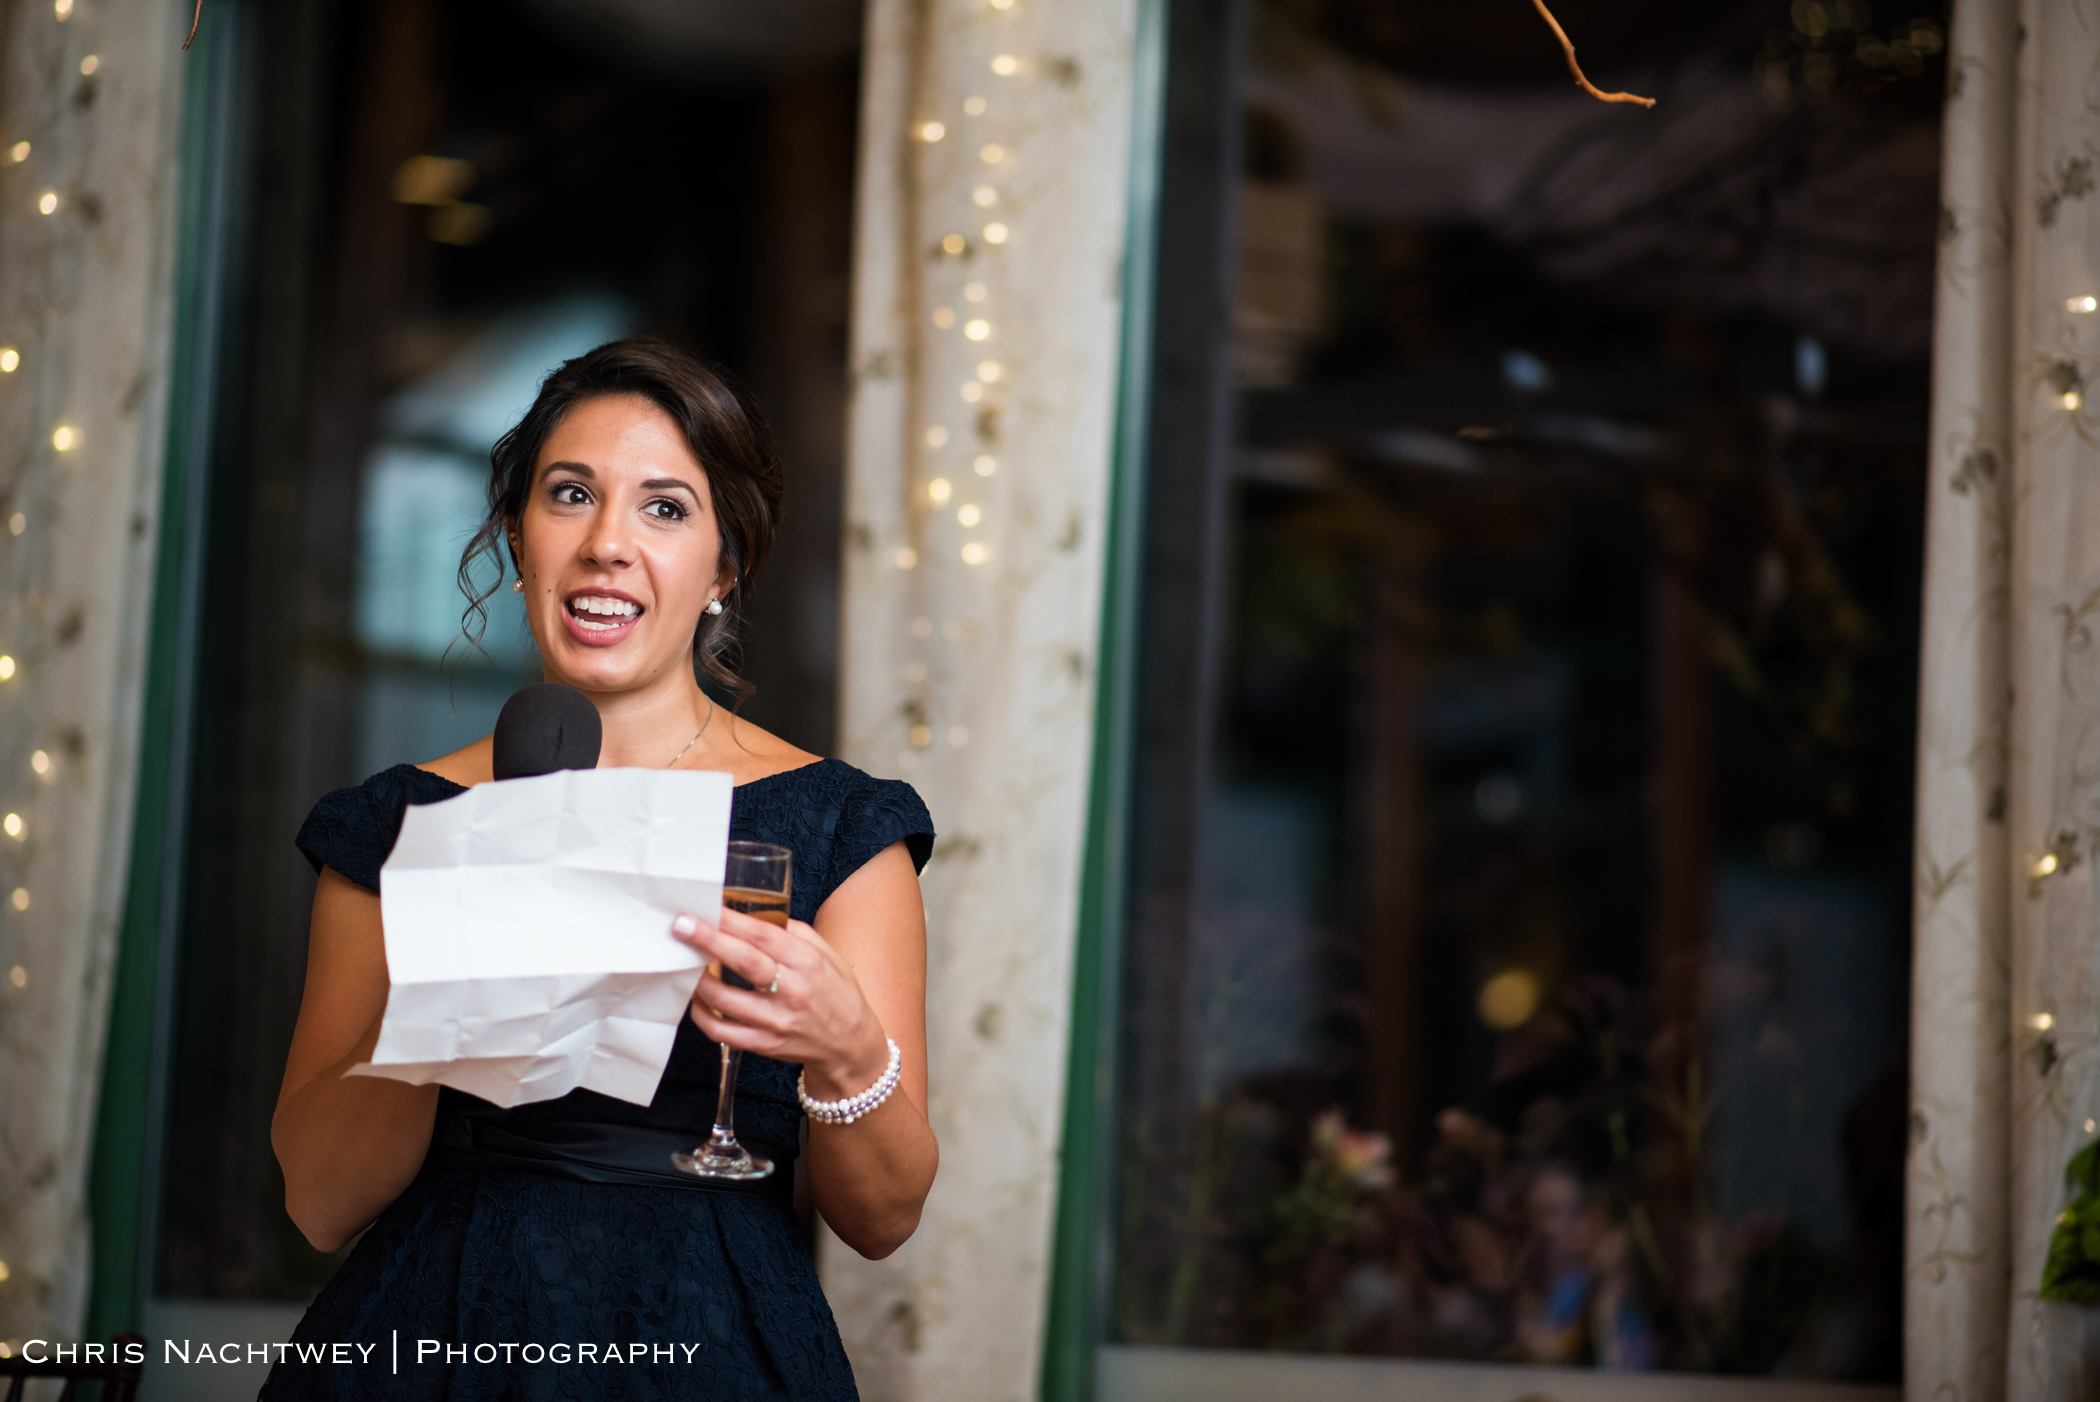 pond-house-cafe-wedding-hartford-ct-photos-chris-nachtwey-photography-2017-jackie-matt-38.jpg